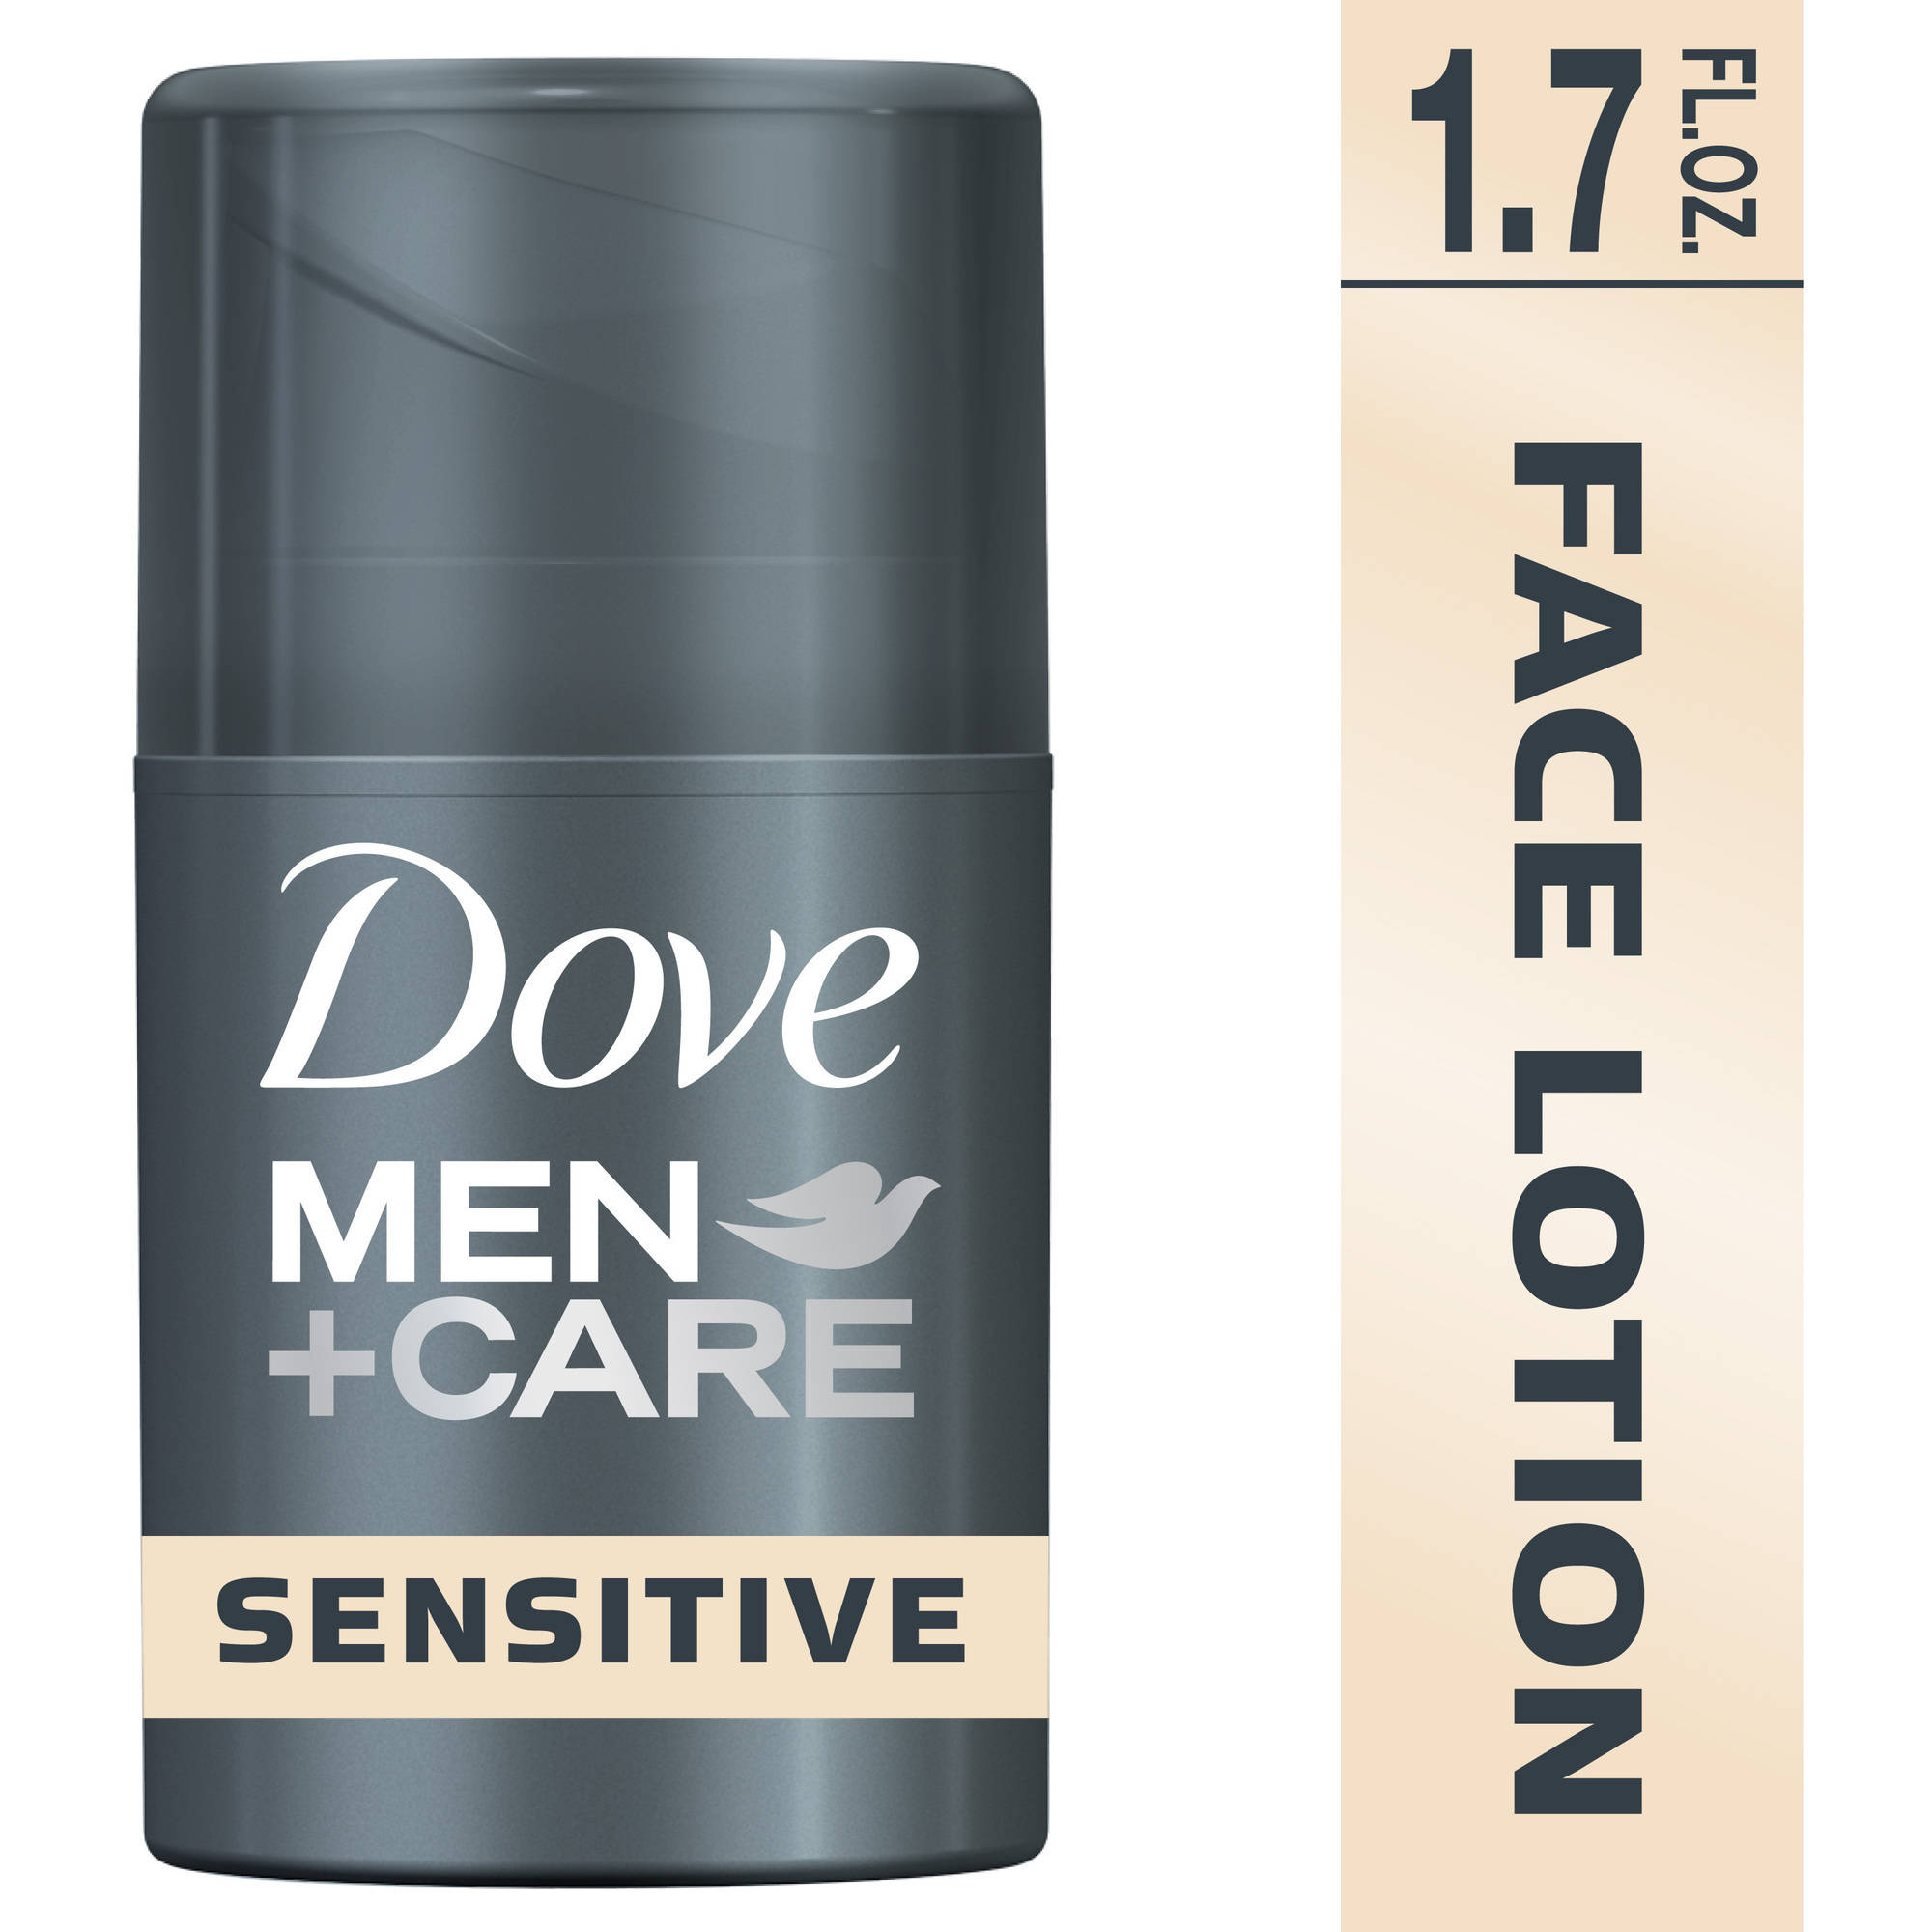 Dove Men+Care Sensitive Plus Face Lotion, 1.69 oz